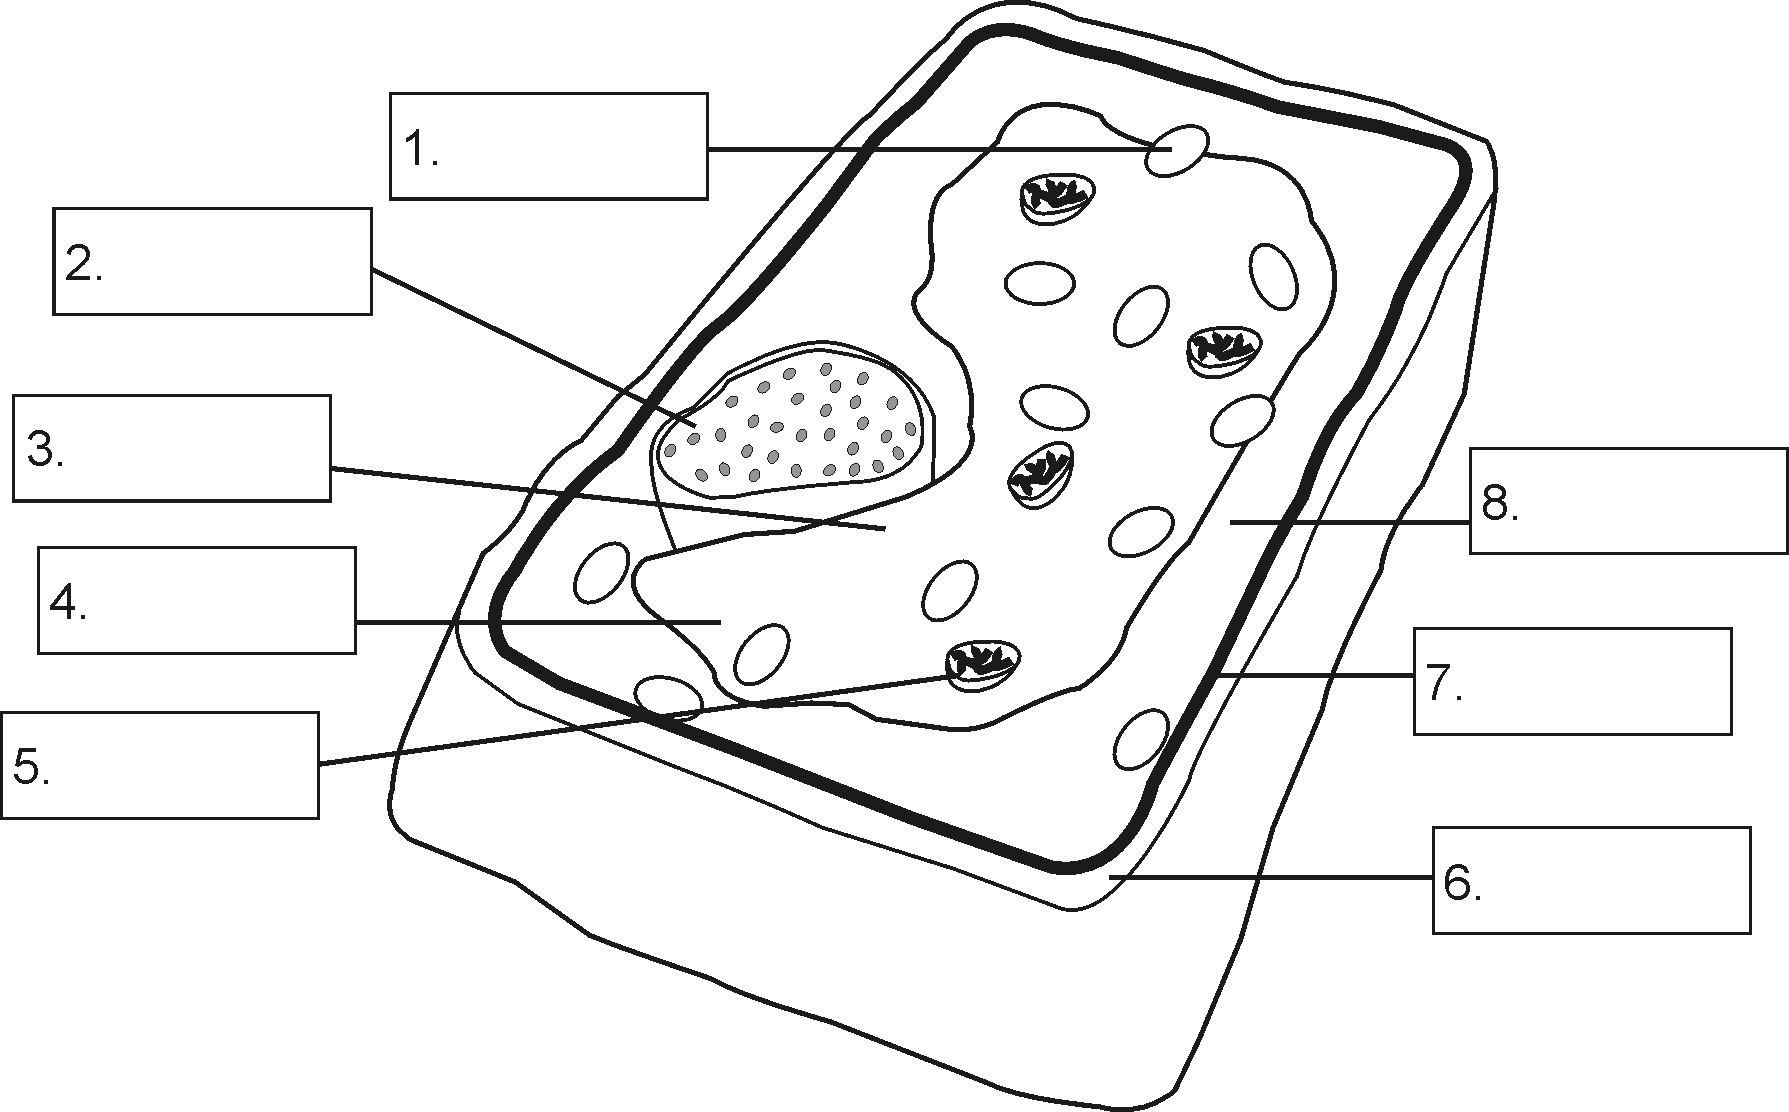 Simple Plant Cell Drawing At Free For Personal Use Parts Diagram As Well Structure Further 1789x1112 Of A